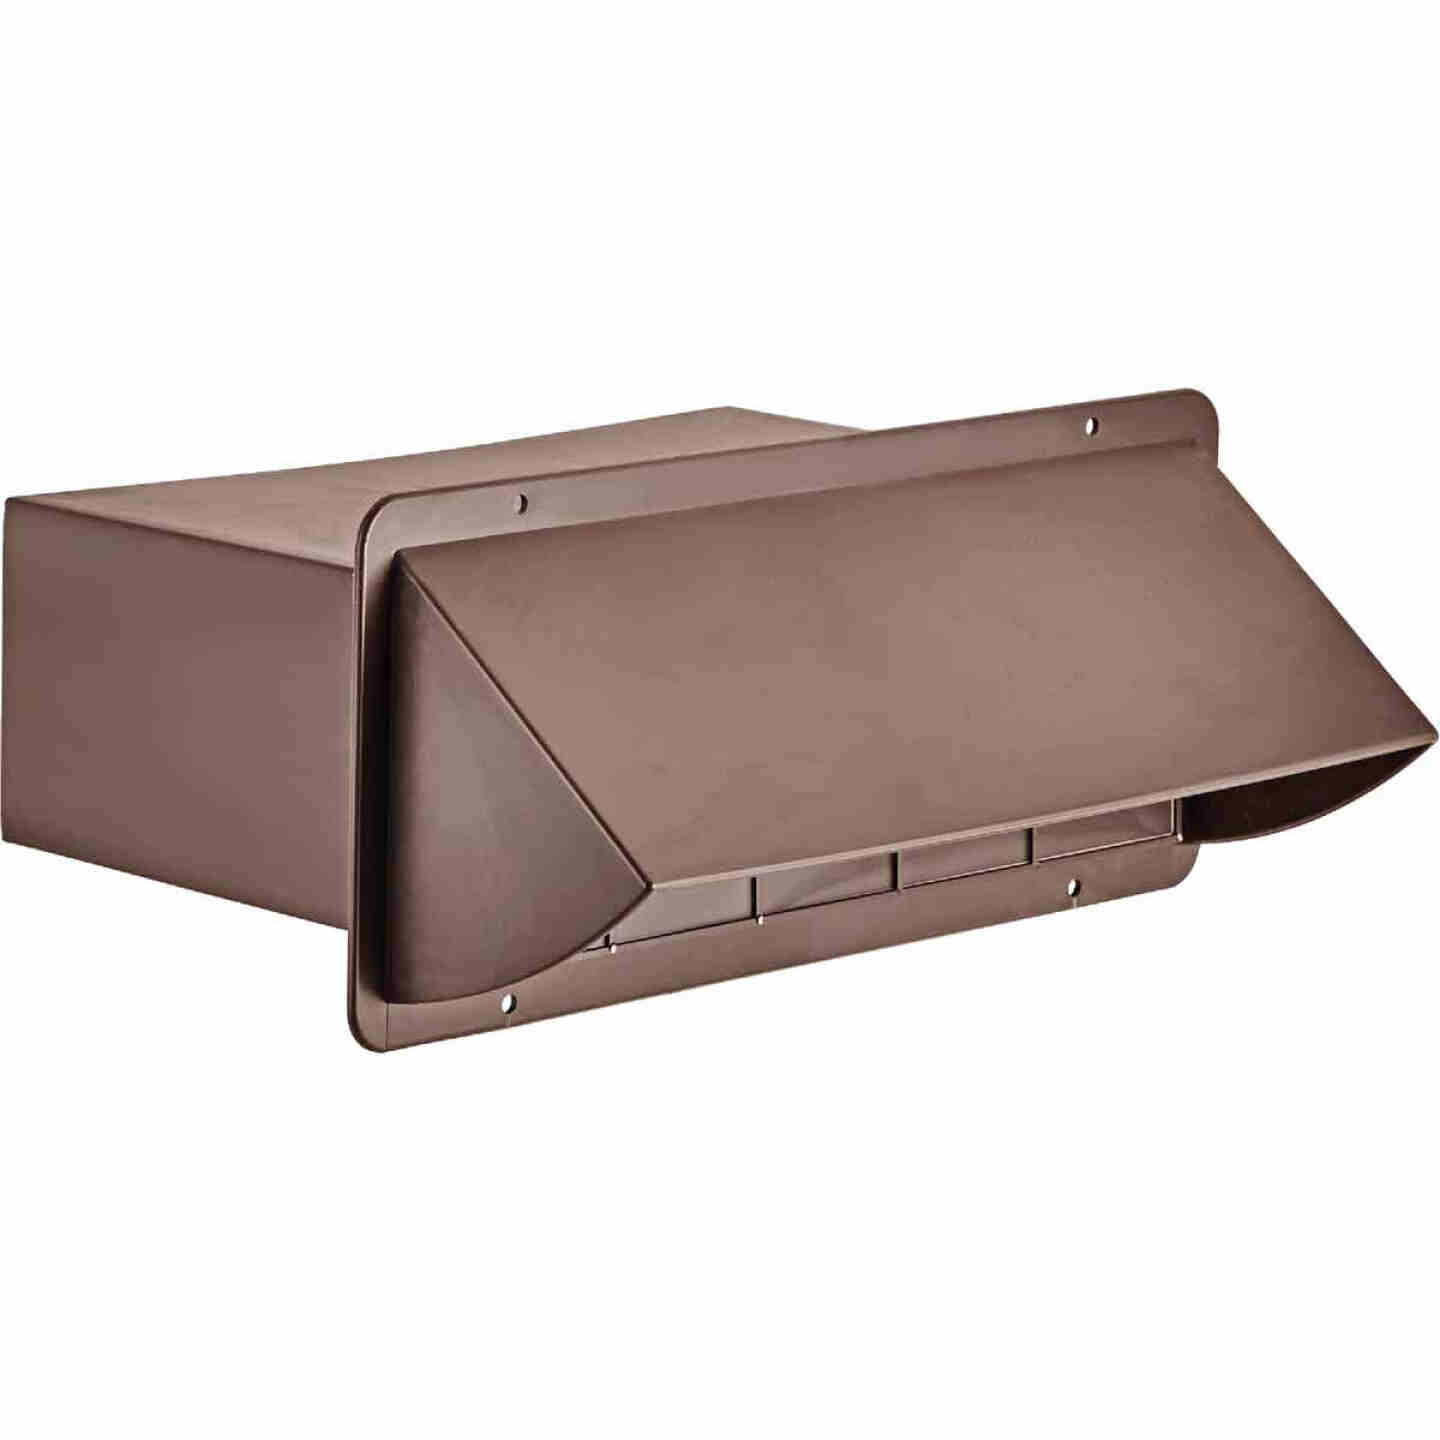 Lambro 3-1/4 In. x 10 In. Brown Plastic Kitchen Wall Vent Cap with Damper Image 1